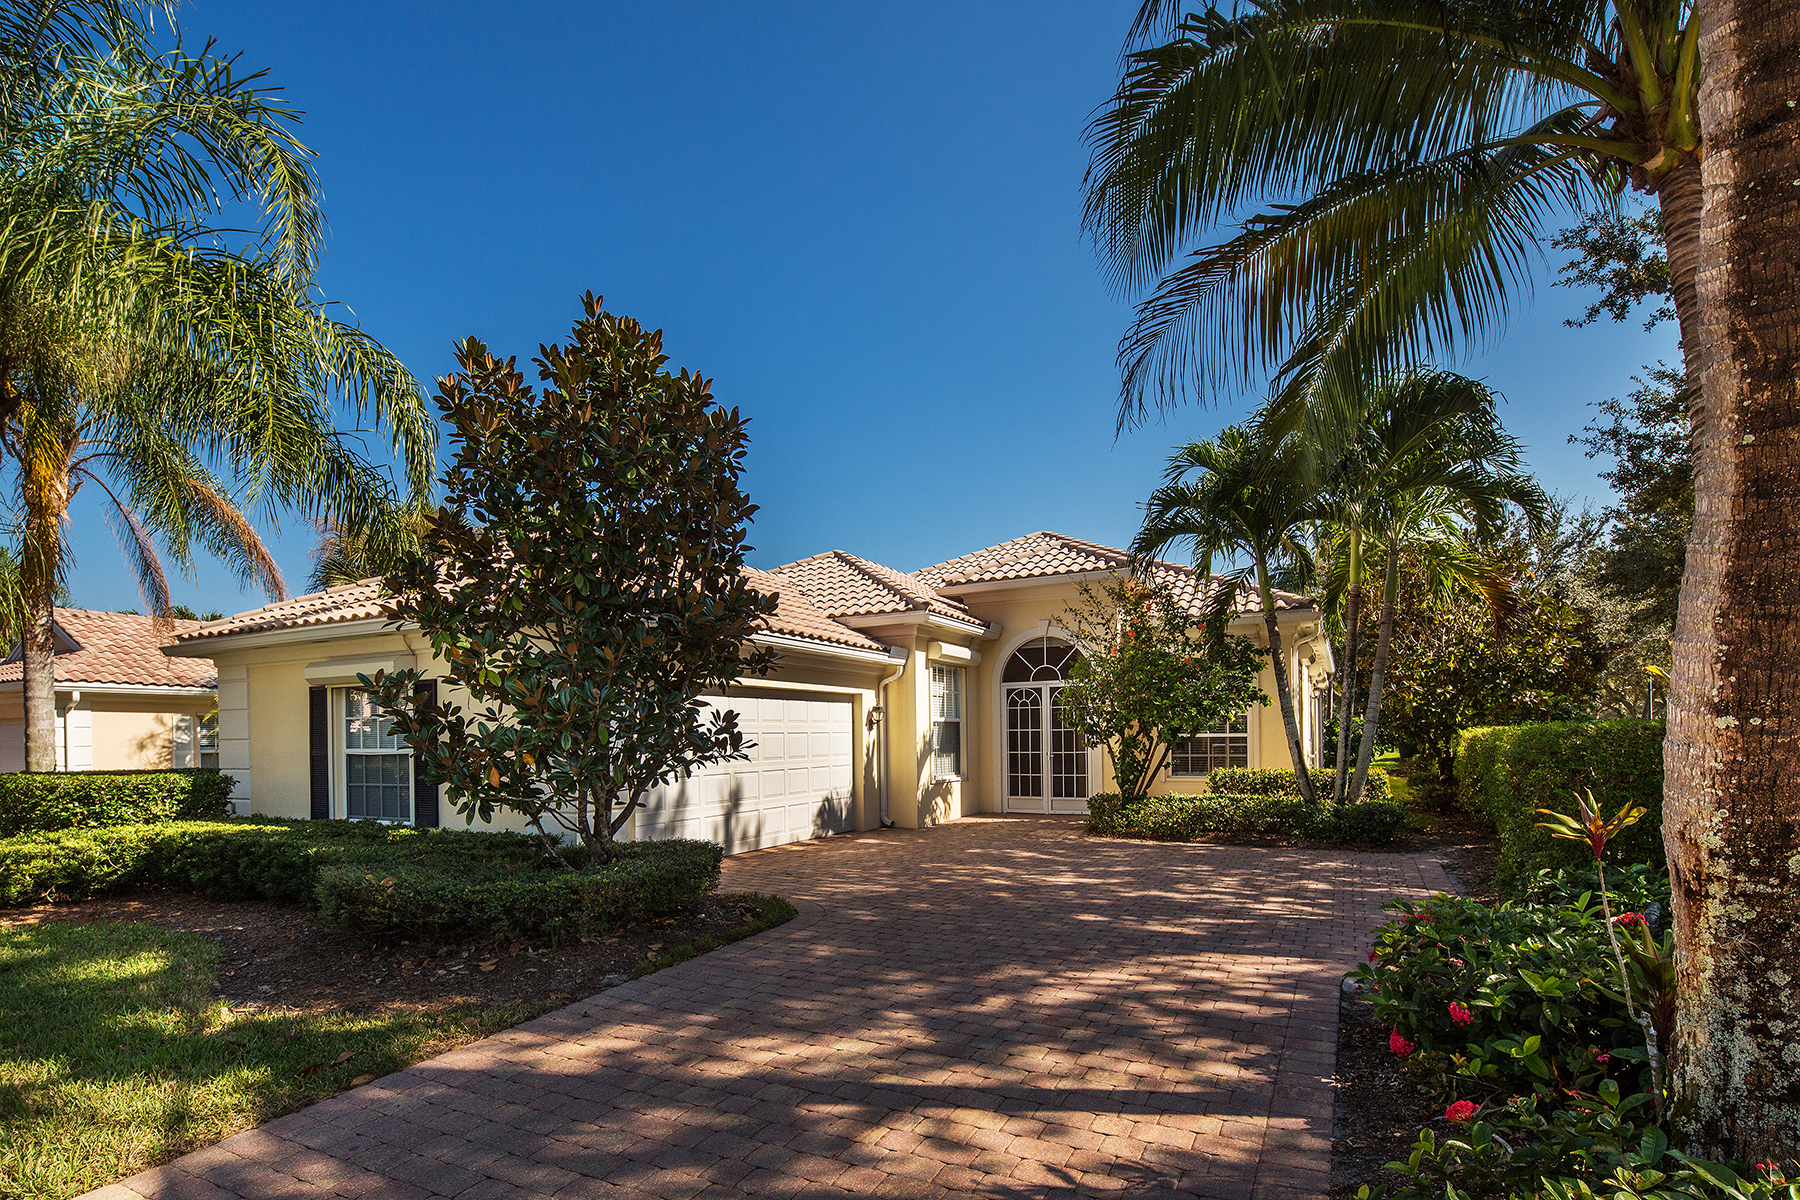 Single Family Home for Sale at Naples 3000 Ellice Way Naples, Florida, 34119 United States